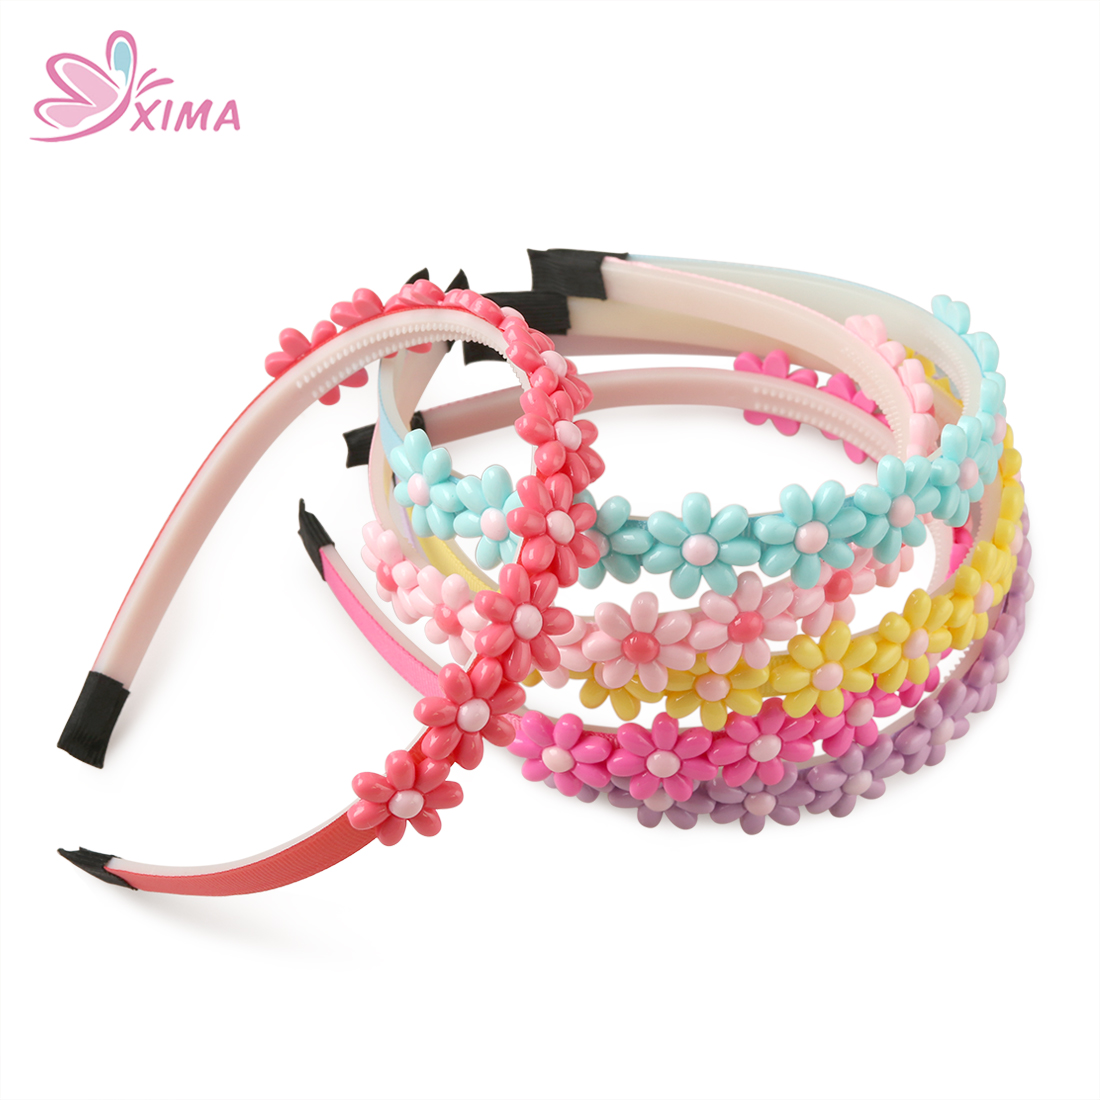 10pcs Multicolor Princess Crown Hair Tiara Headband Plastic Hair Band With Teeth